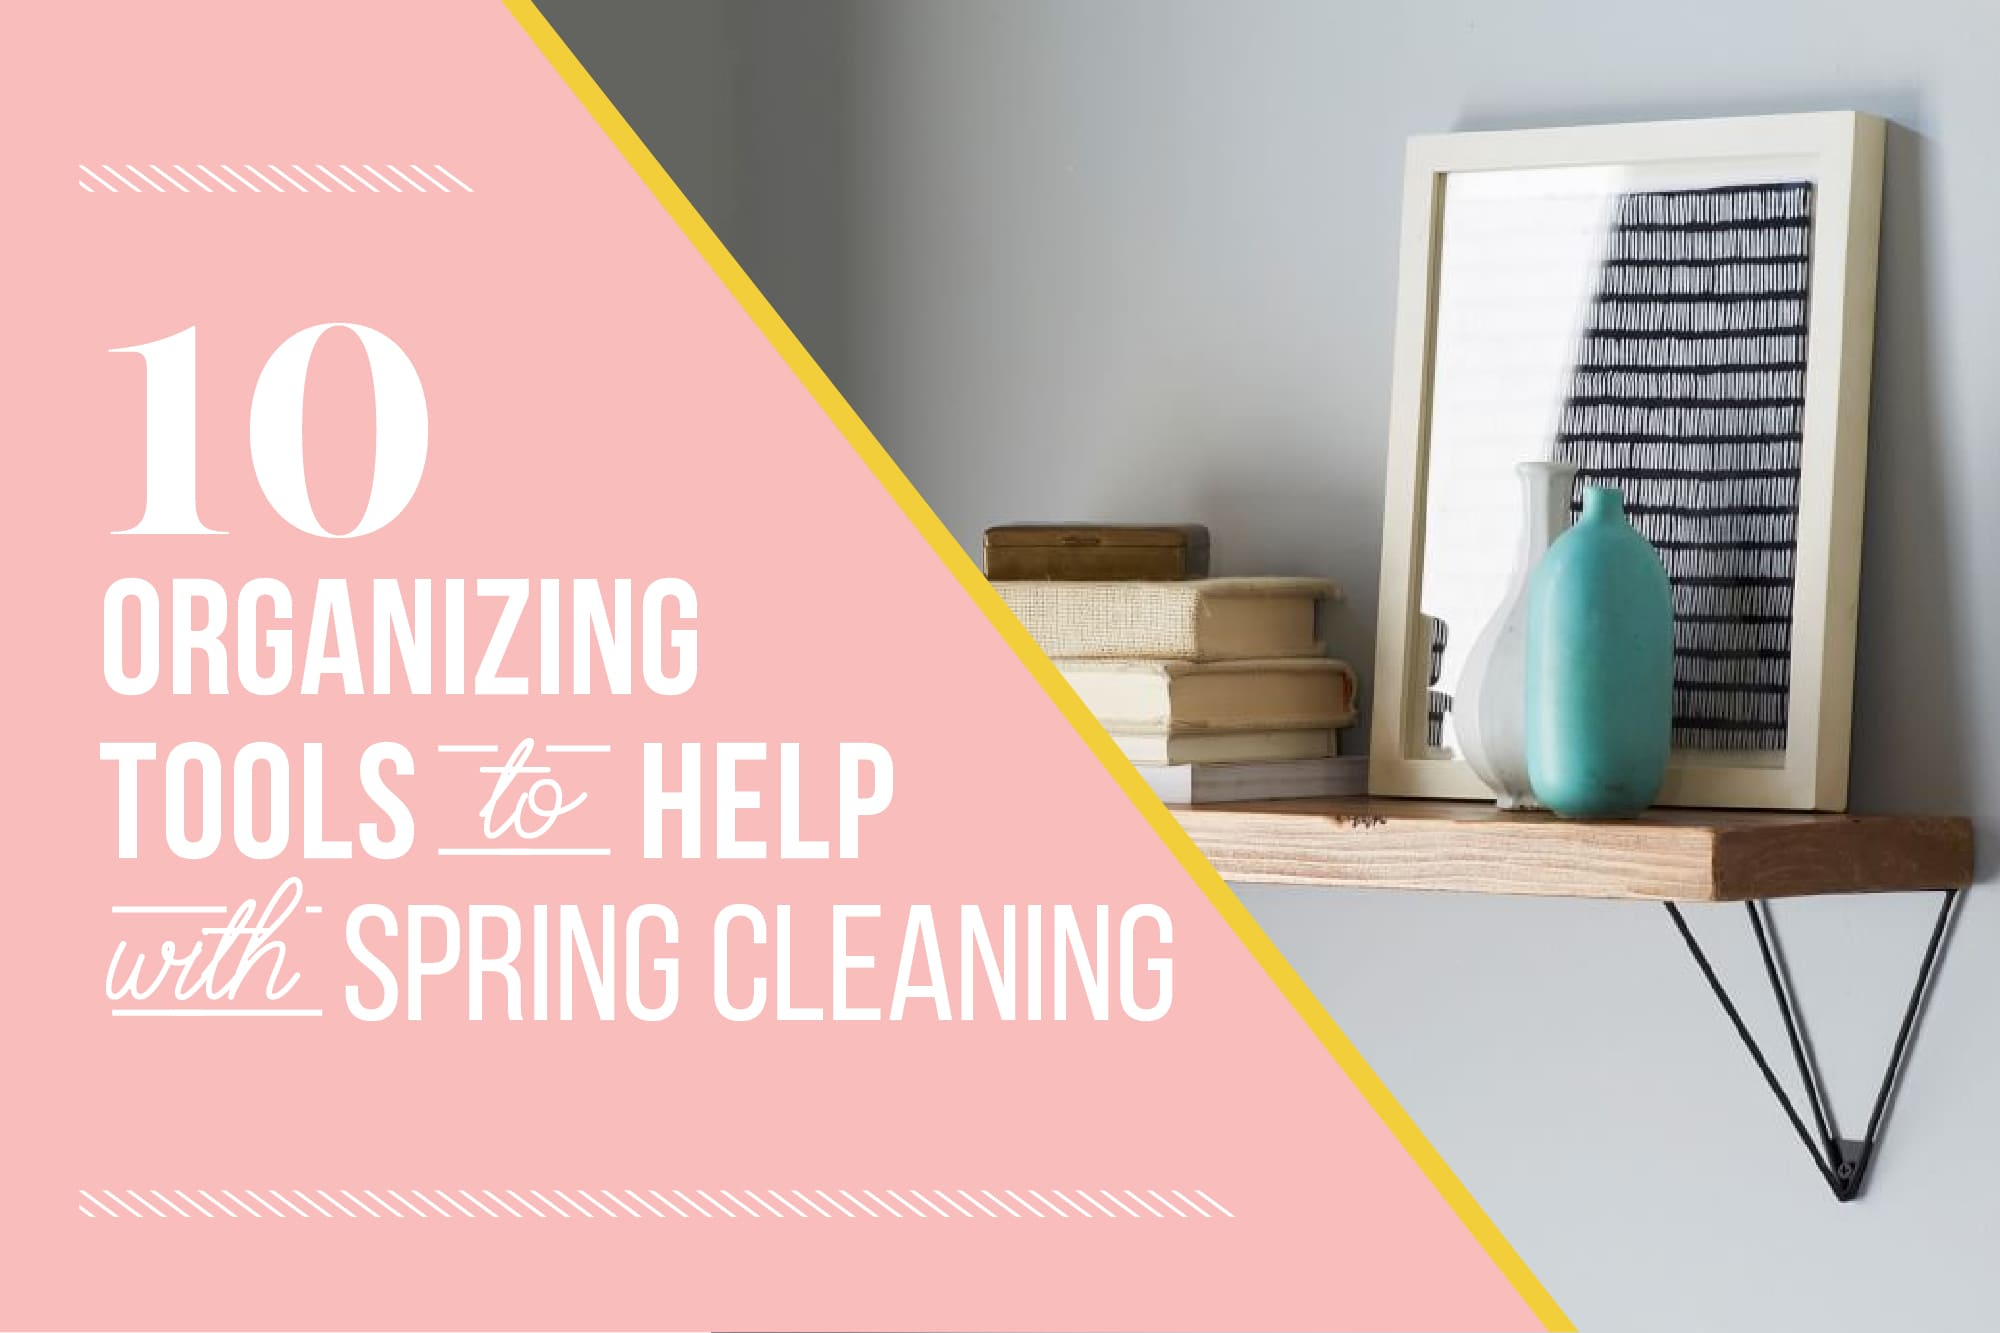 10 of Our Favorite Kitchen Organizers for Spring: gallery image 1